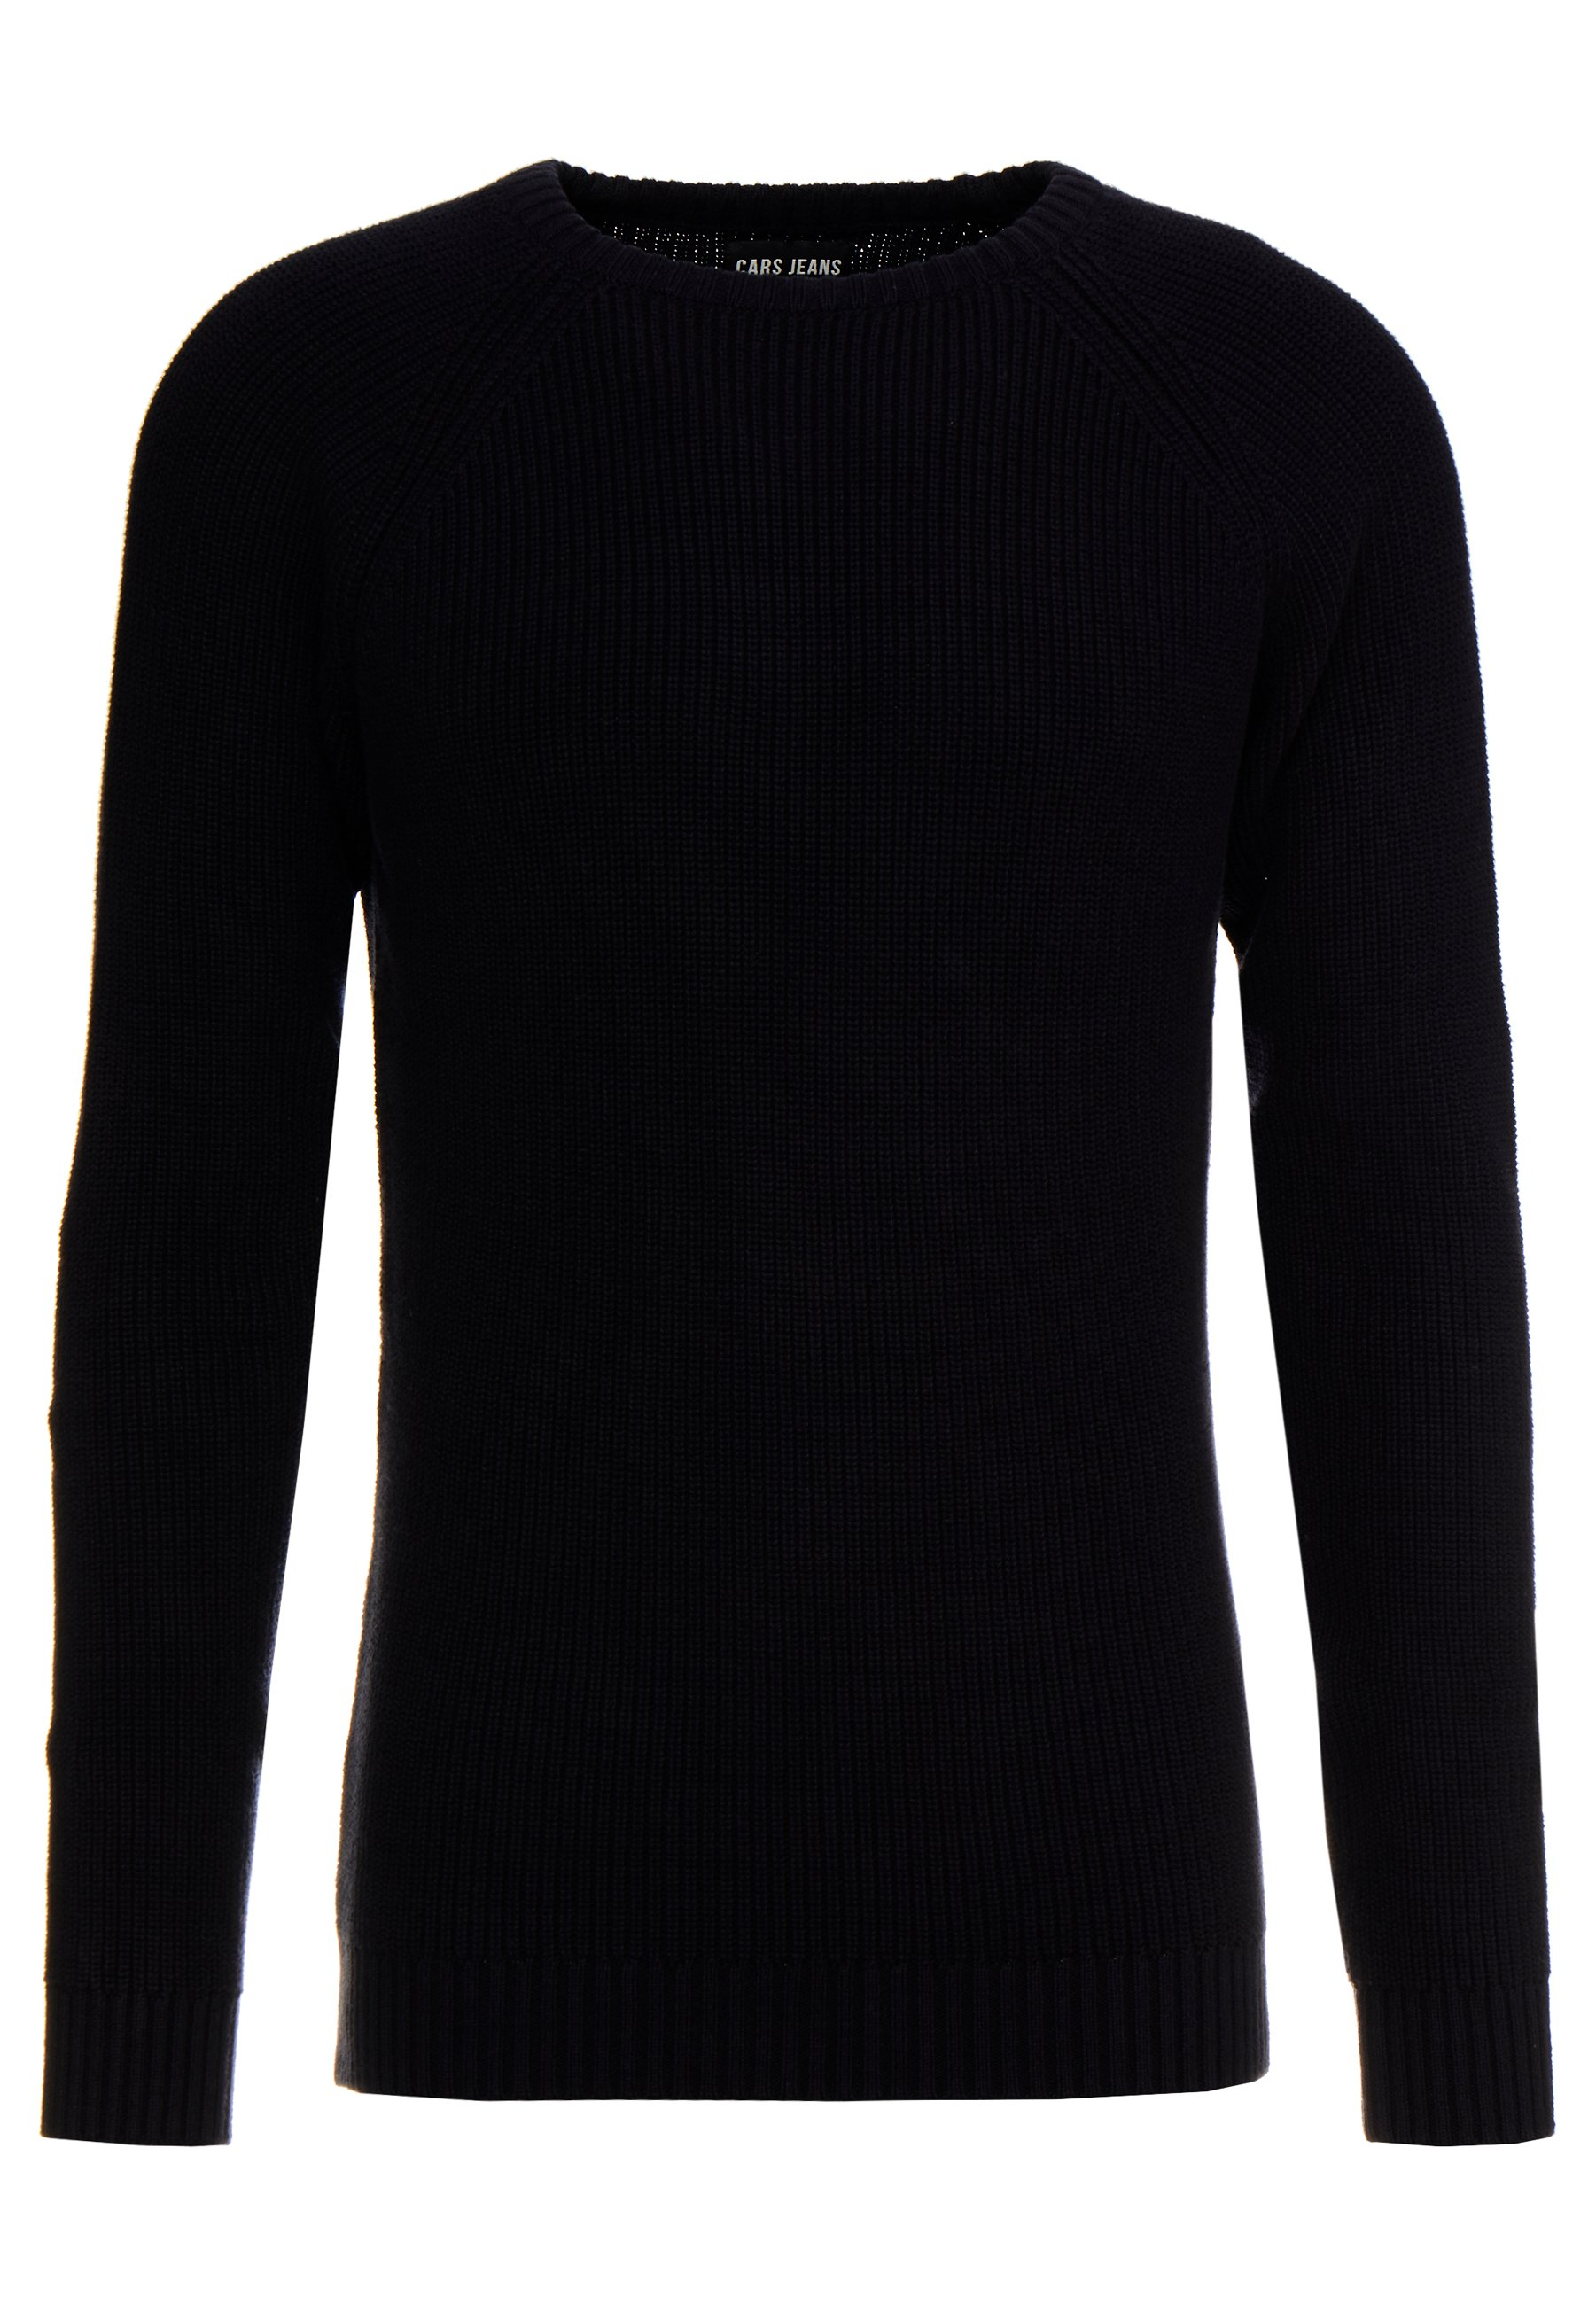 Cars Jeans PITCH - Maglione - navy